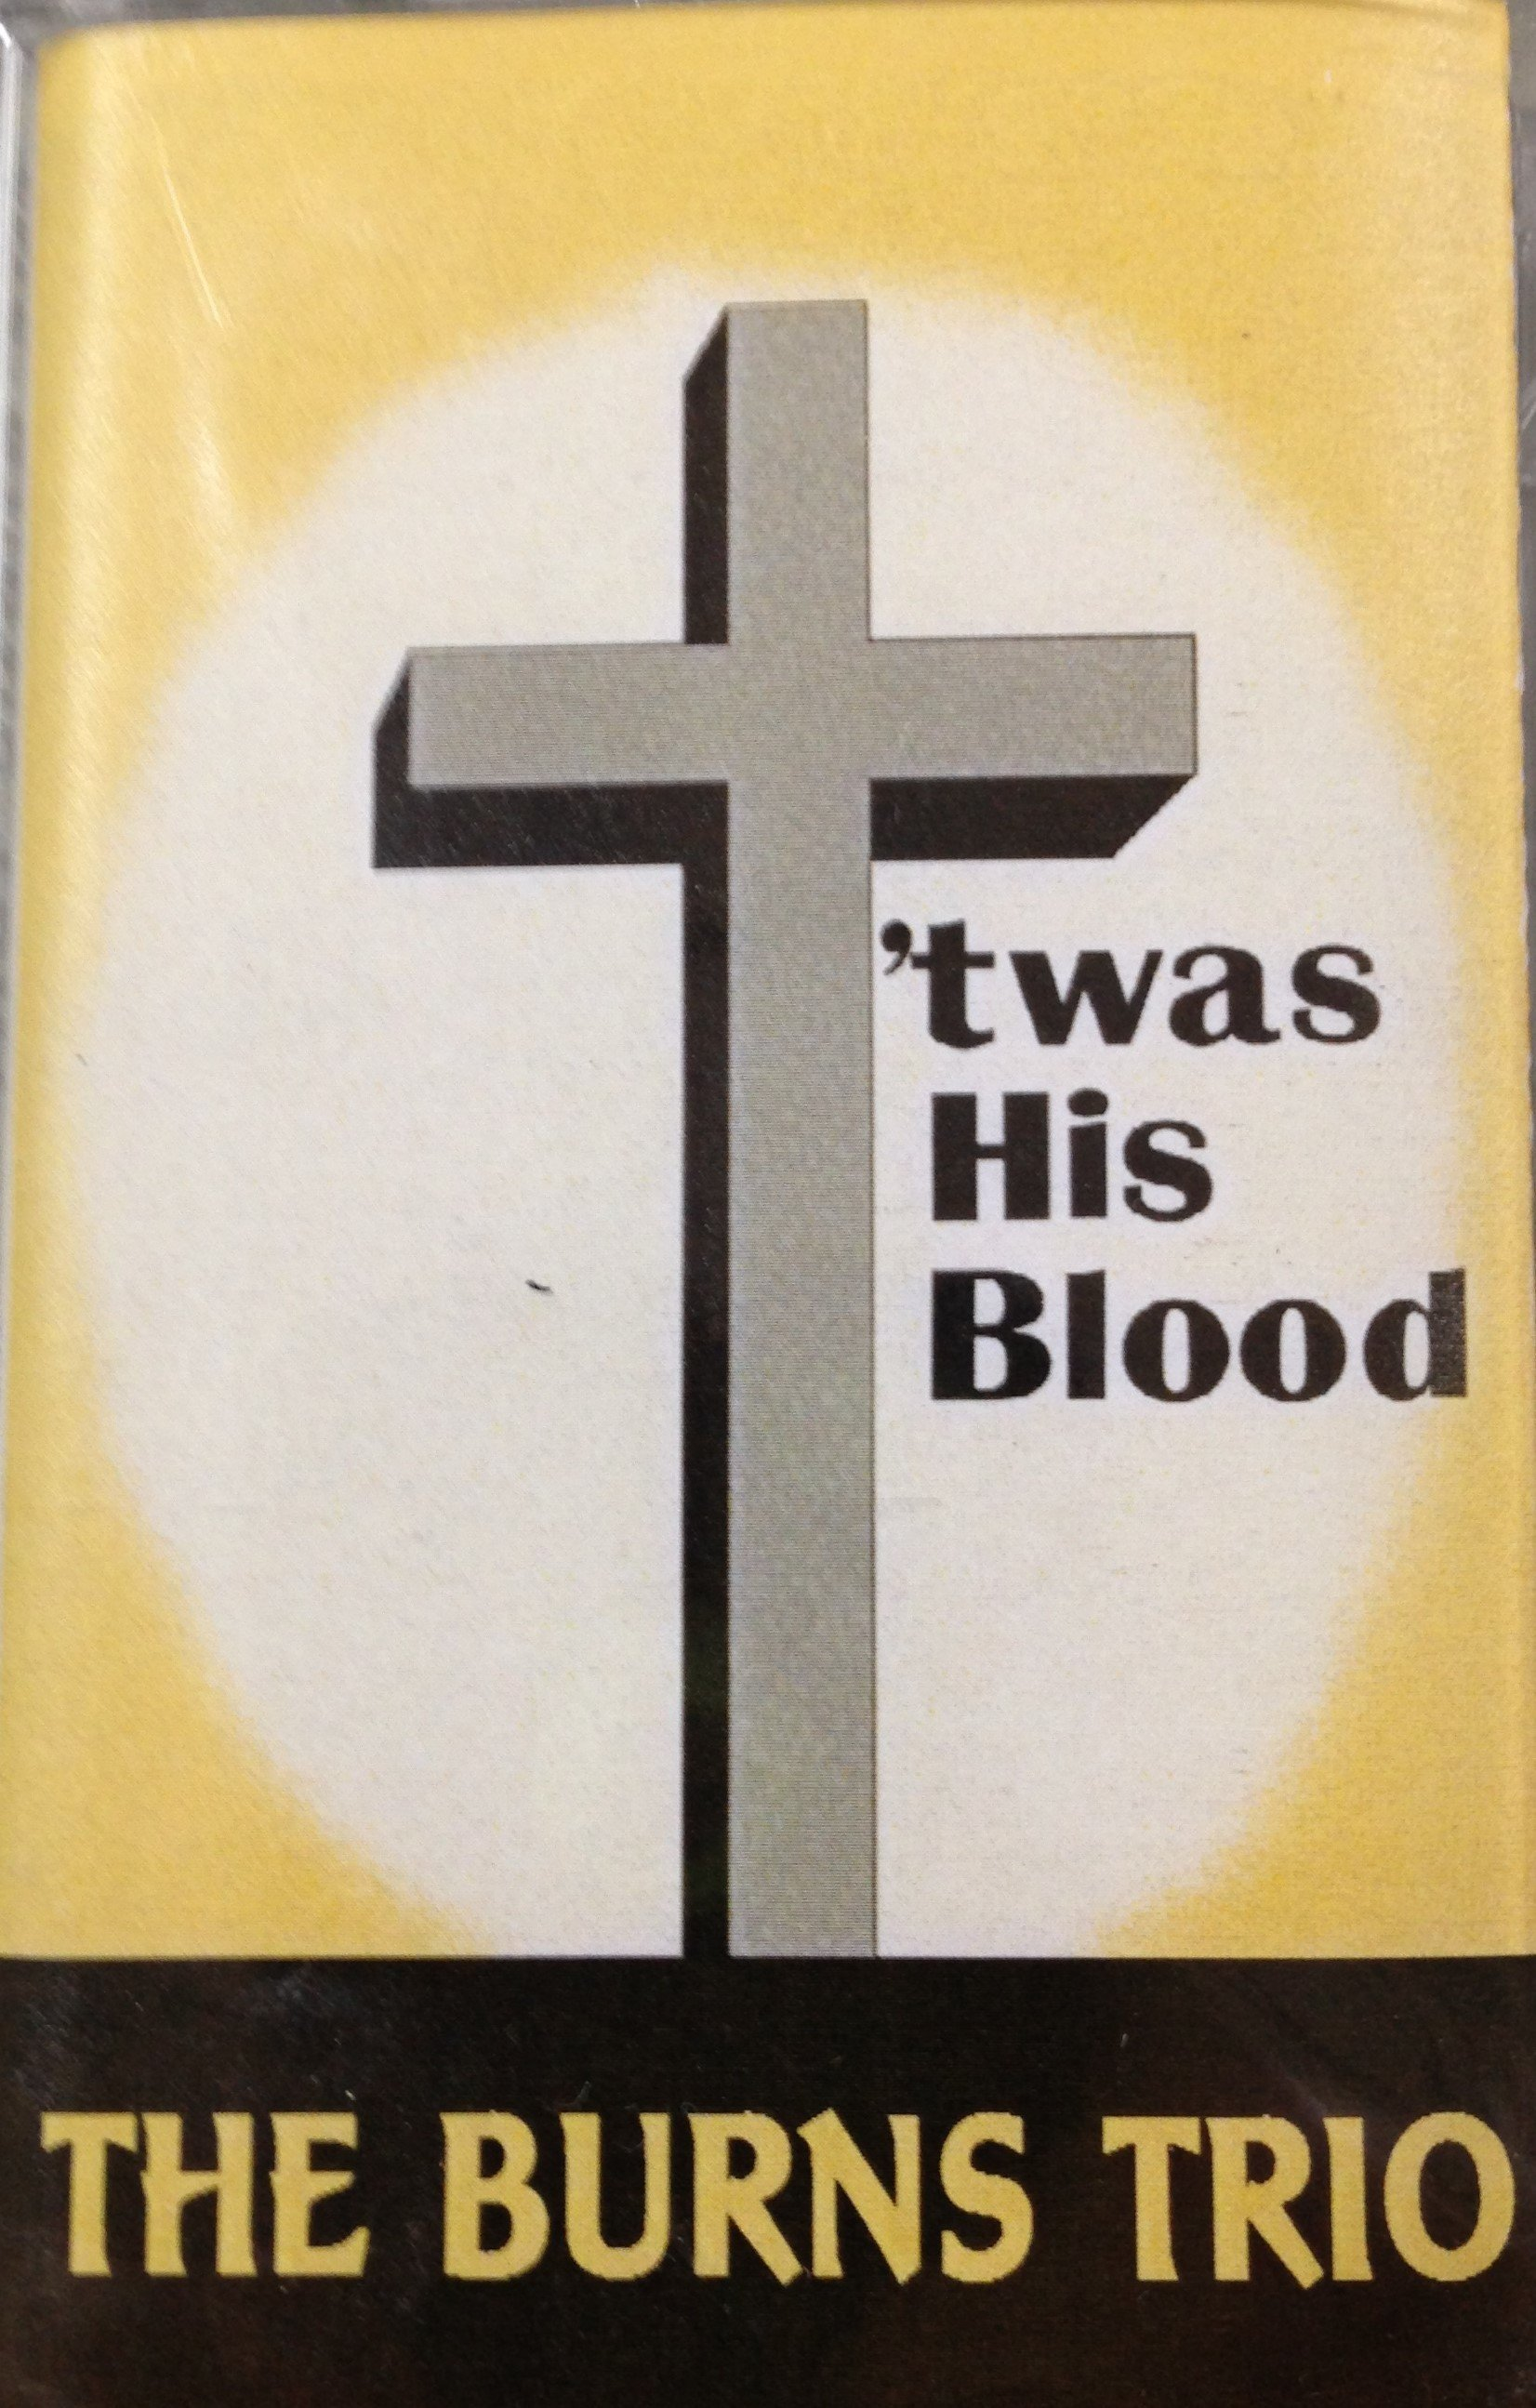 The Burns Trio:  'twas His Blood (CASSETTE TAPE) 00033